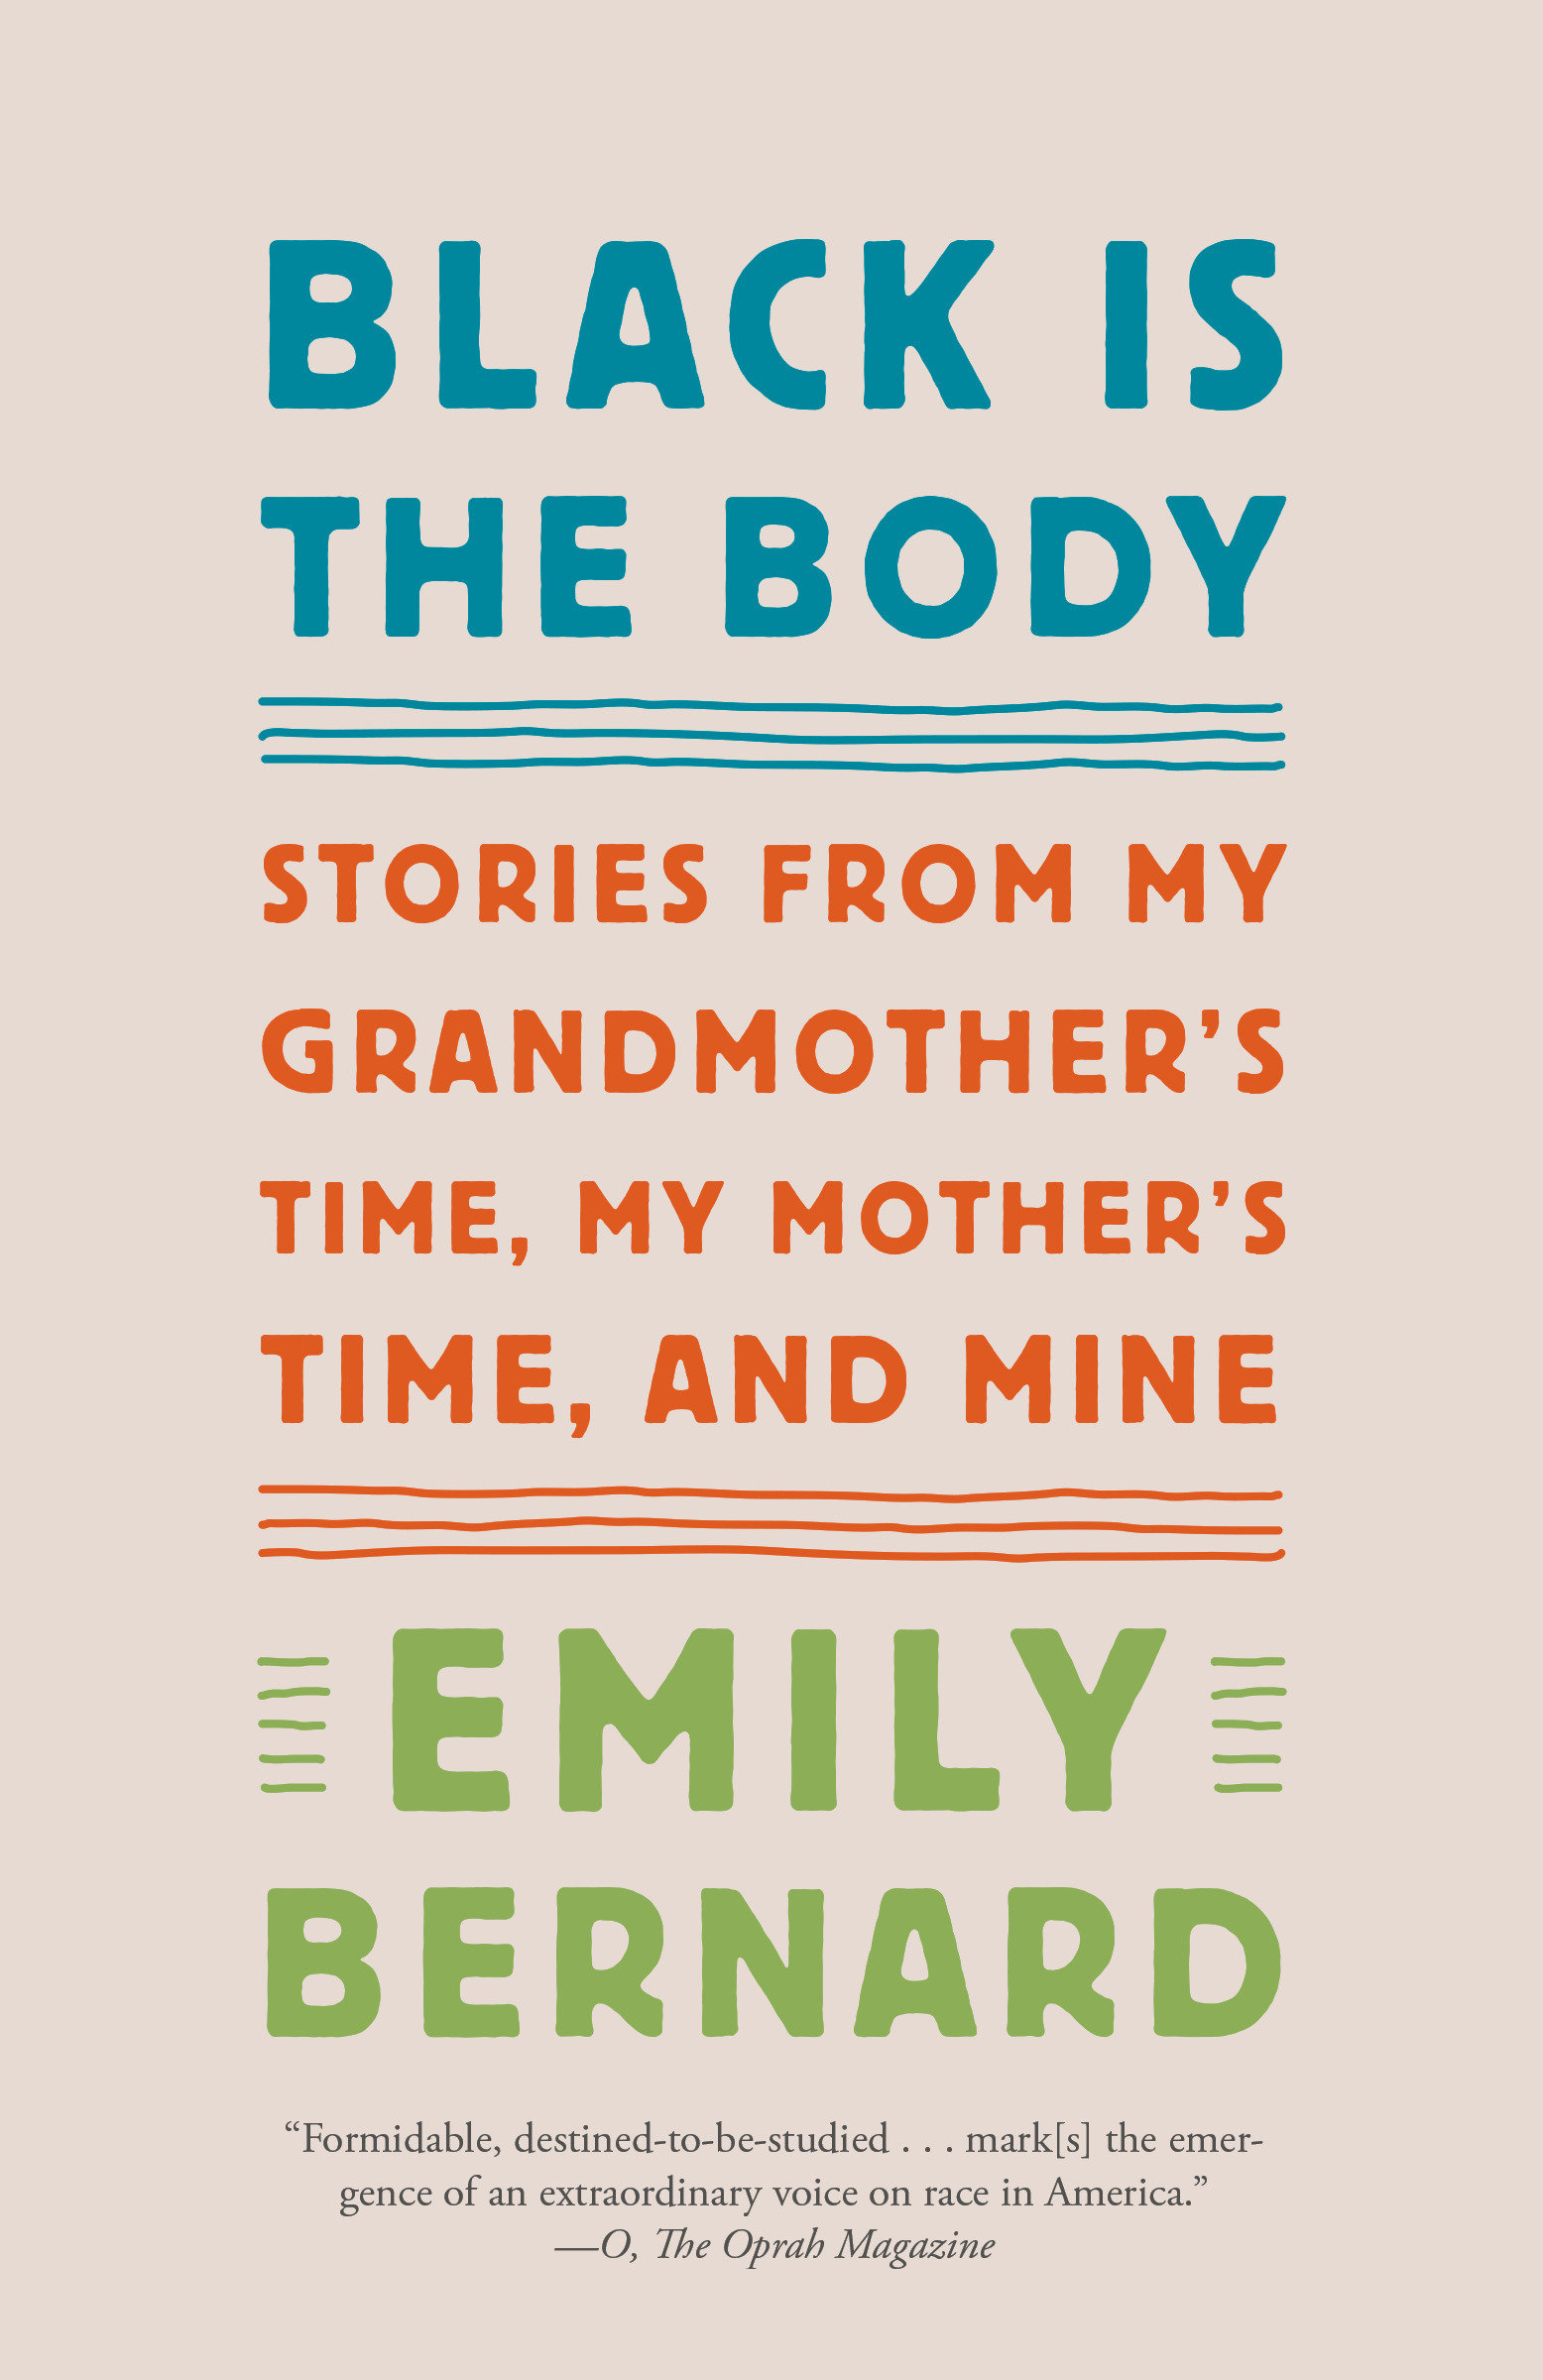 Black Is the Body Stories from My Grandmother's Time, My Mother's Time, and Mine